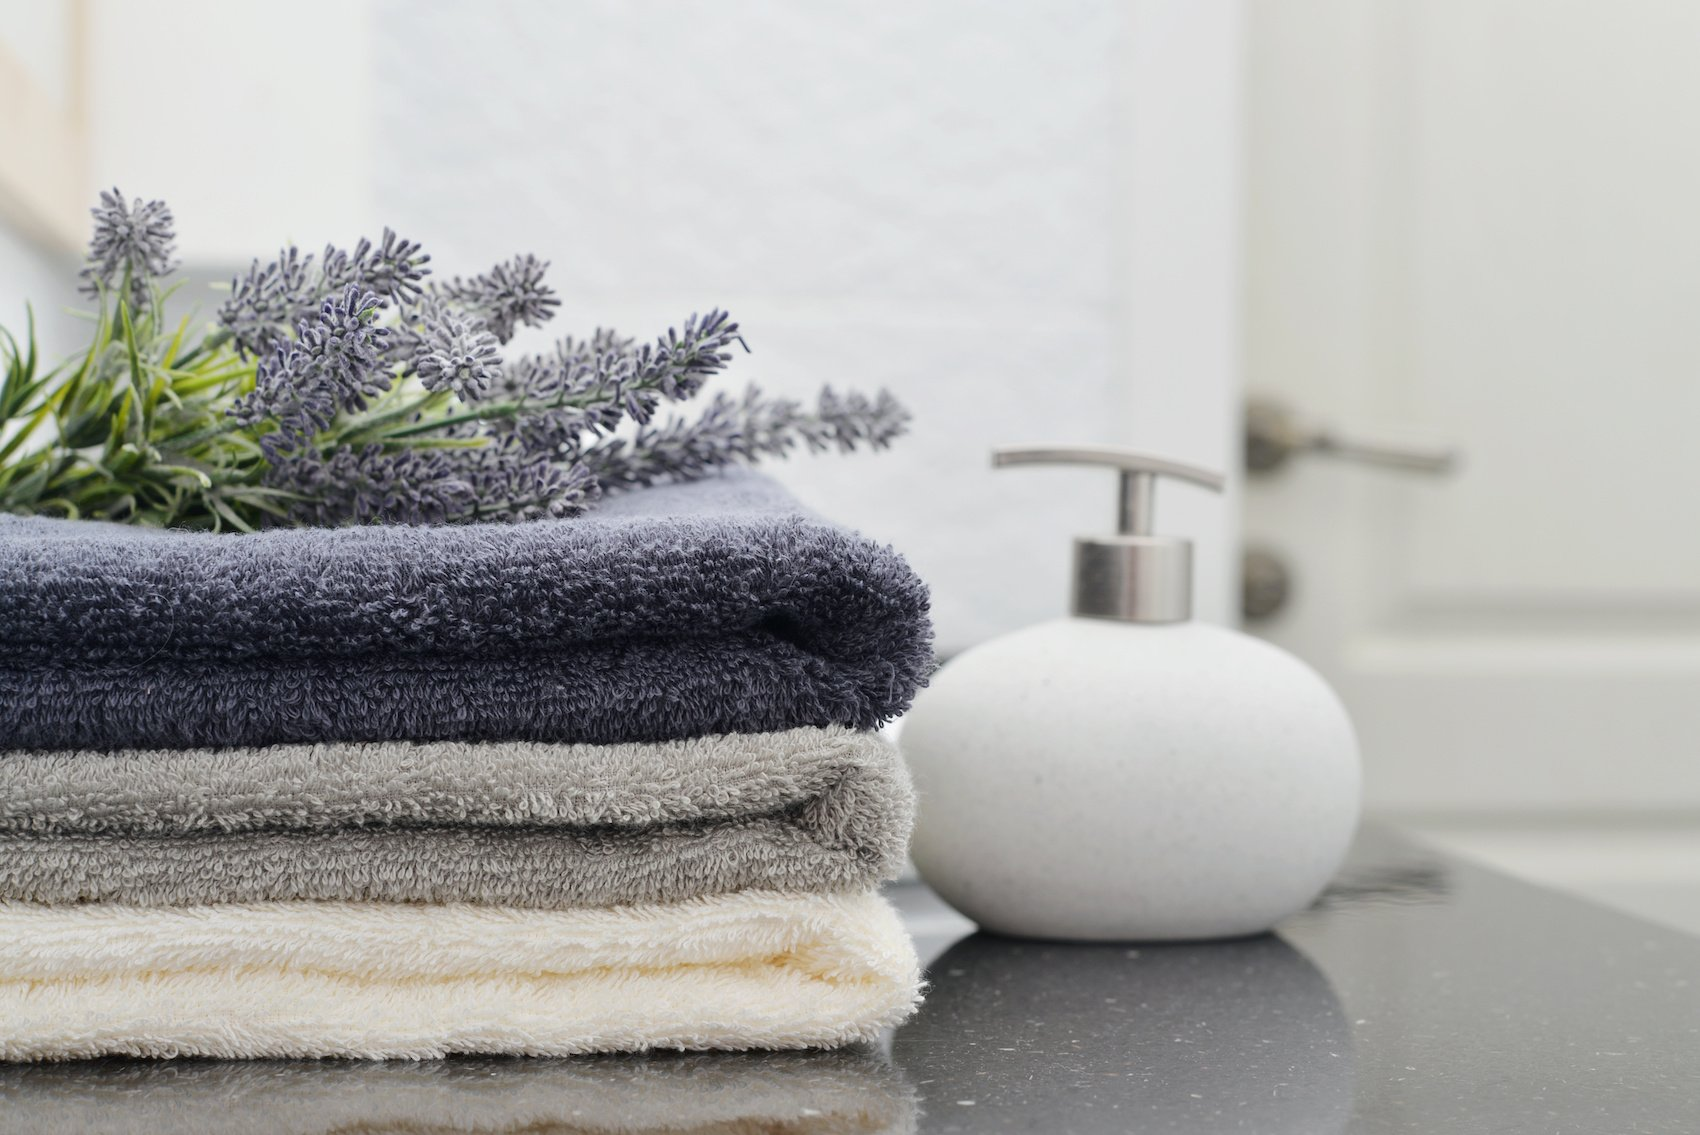 house cleaners service kelowna bathroom all about details cleaning services